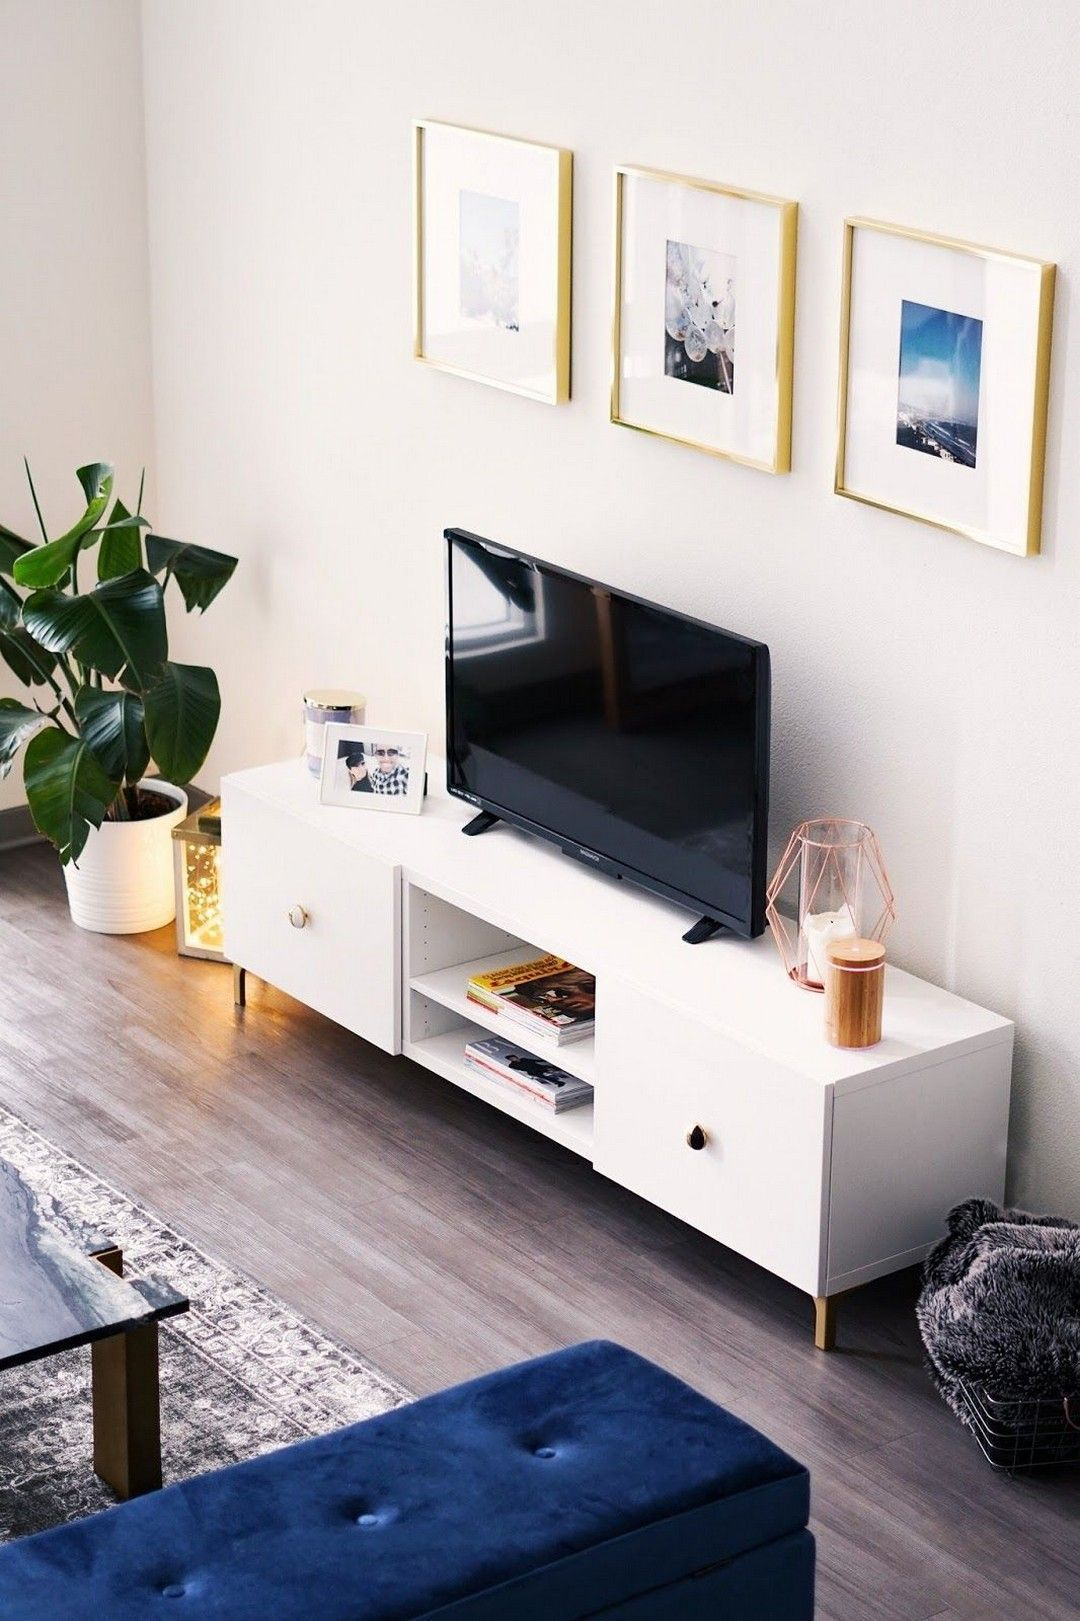 25 Inspiring Modern Tv Stand Ideas For Your Living Room Tv Stand Decor Living Room Living Room Tv Stand Ikea Living Room